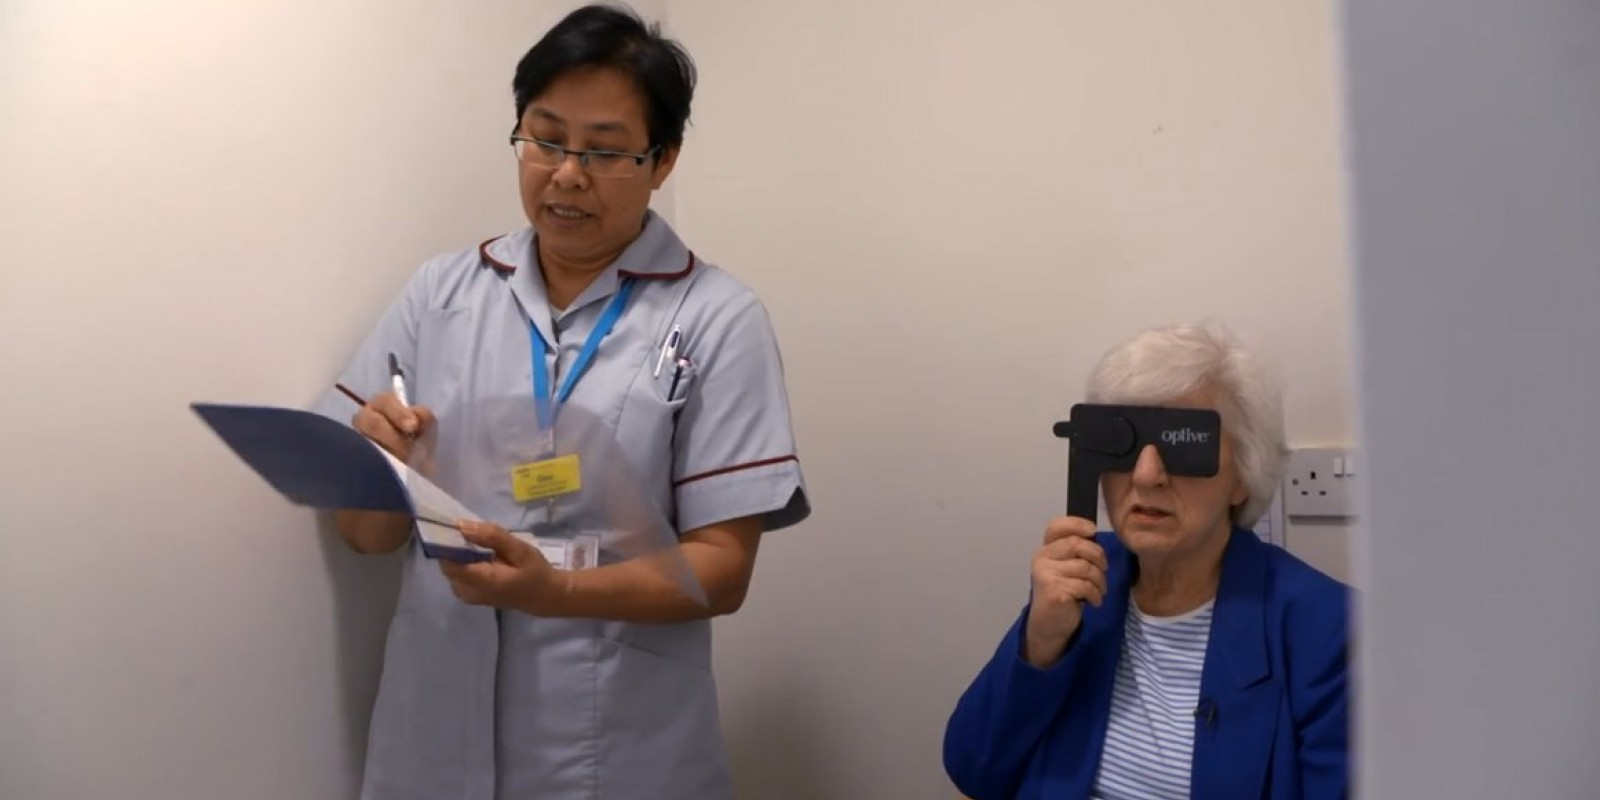 Ophthalmology, joint working, NHS